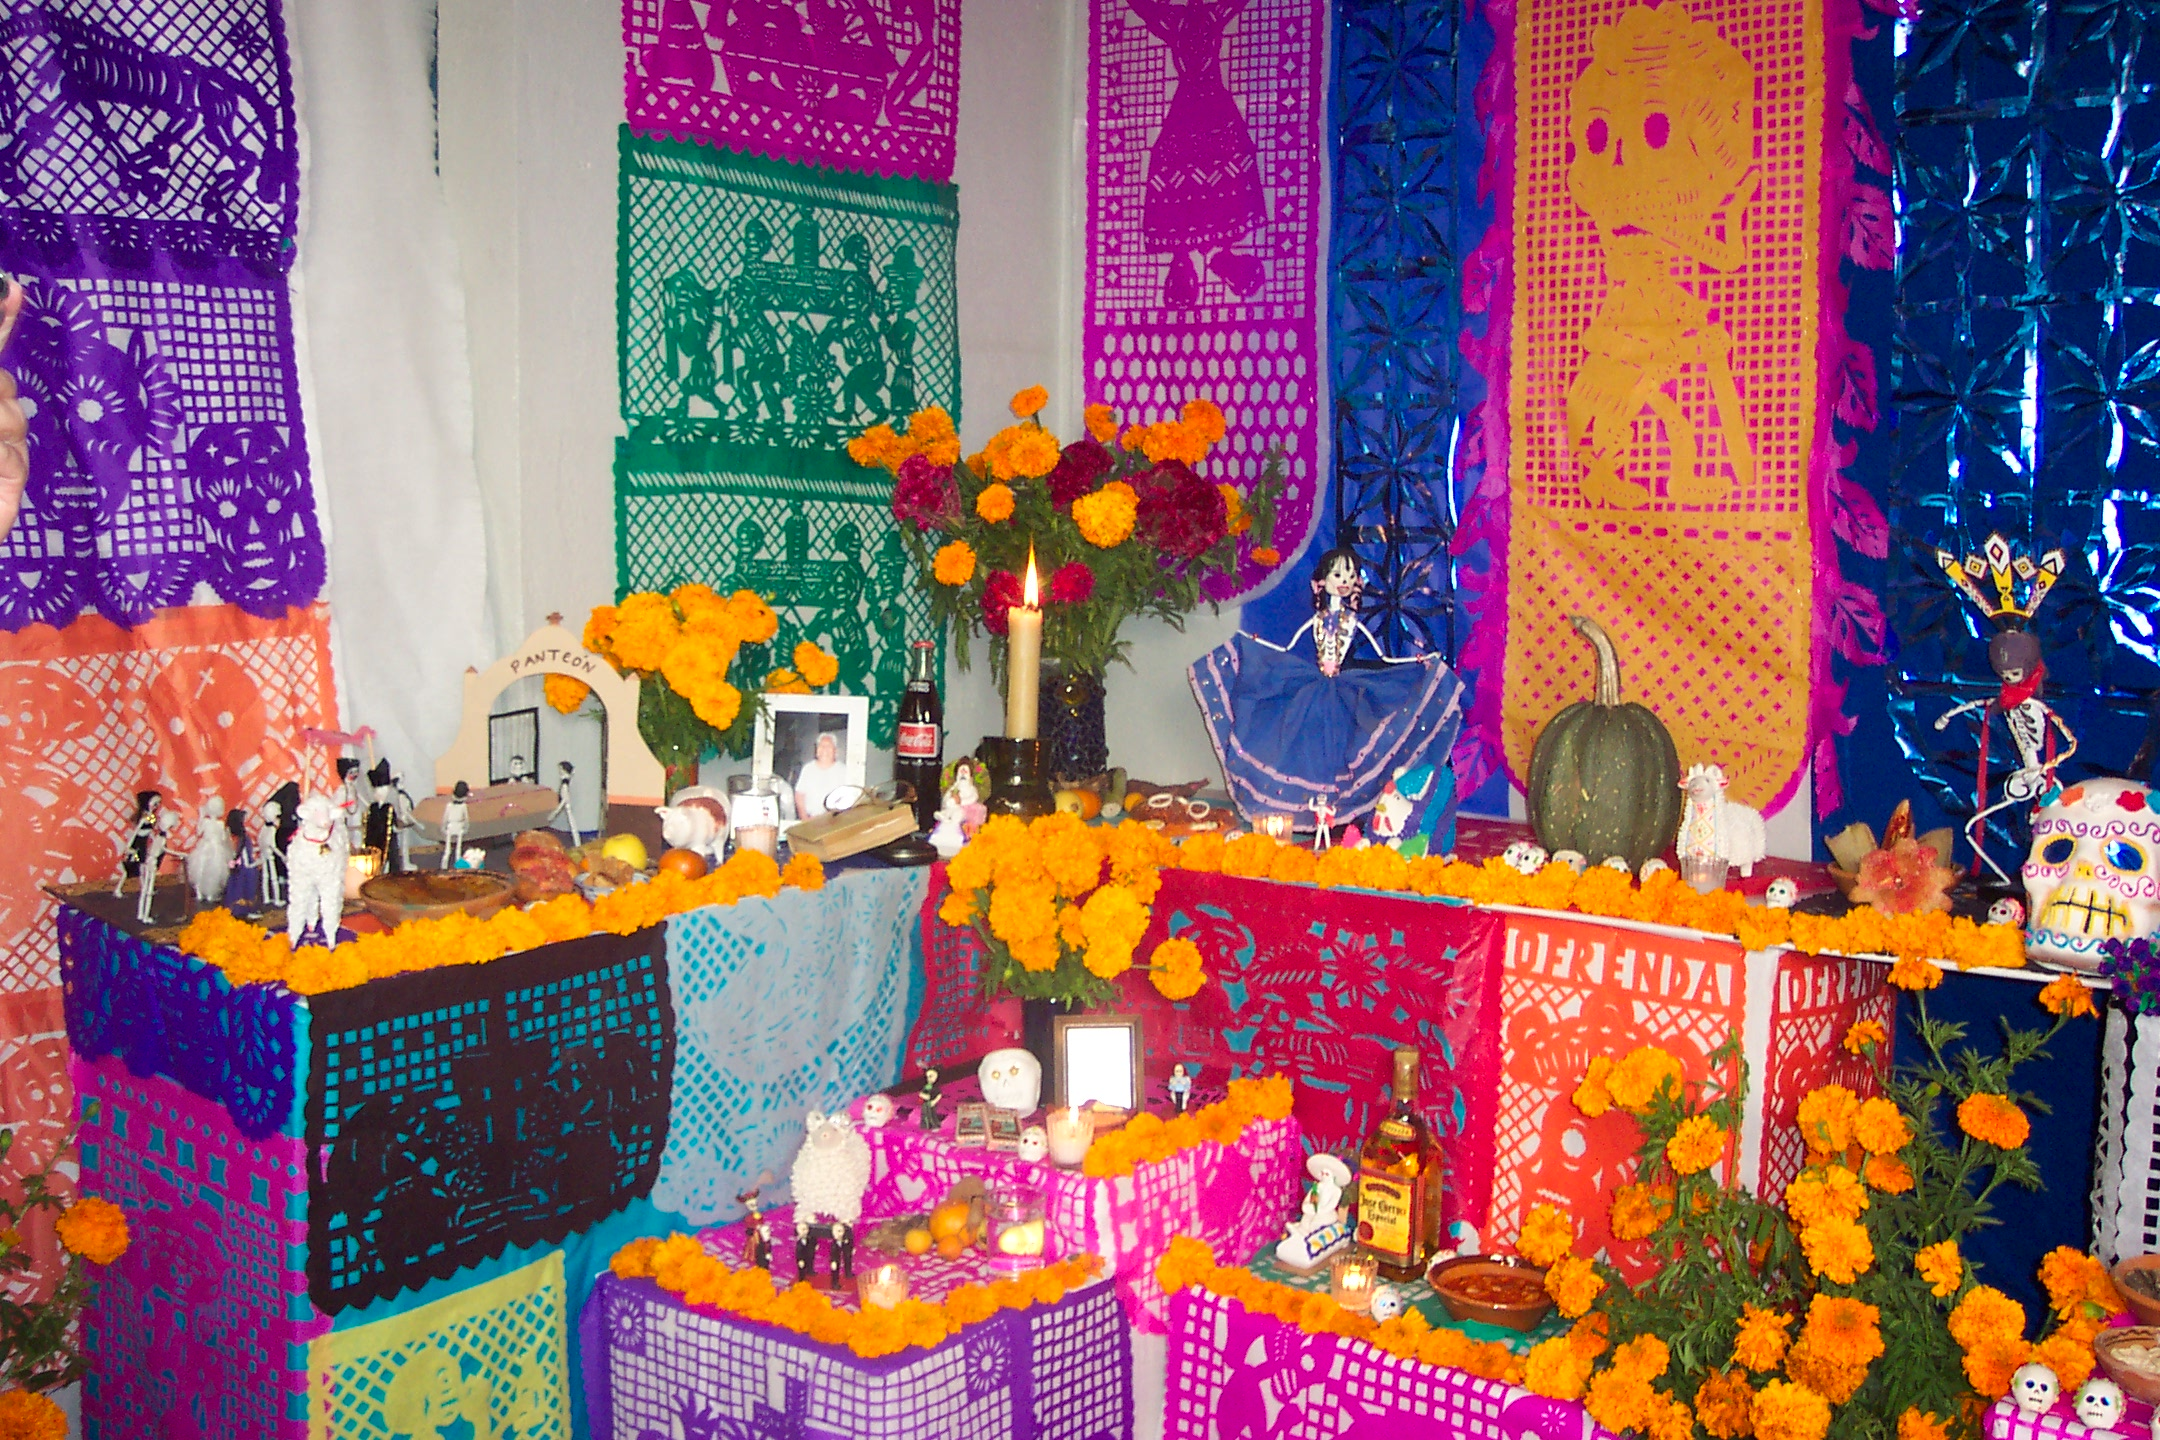 Build A Day Of The Dead Ofrenda To Honor Your Departed